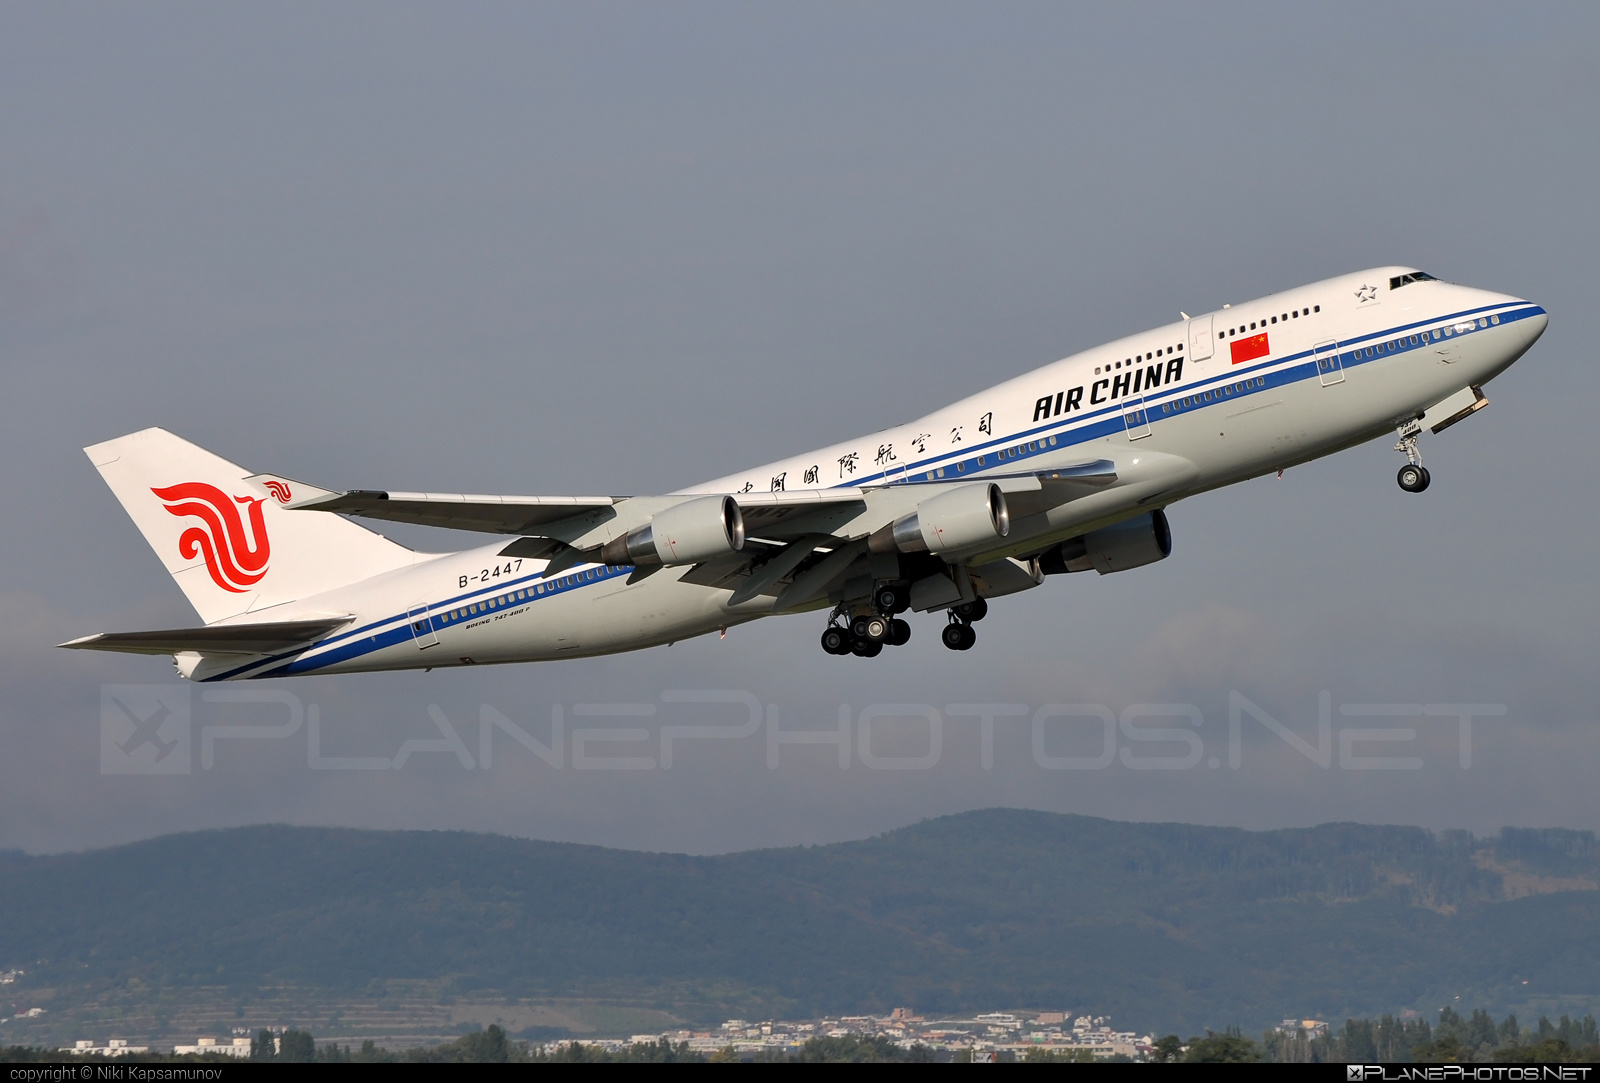 Air China Boeing 747-400 - B-2447 #airchina #b747 #boeing